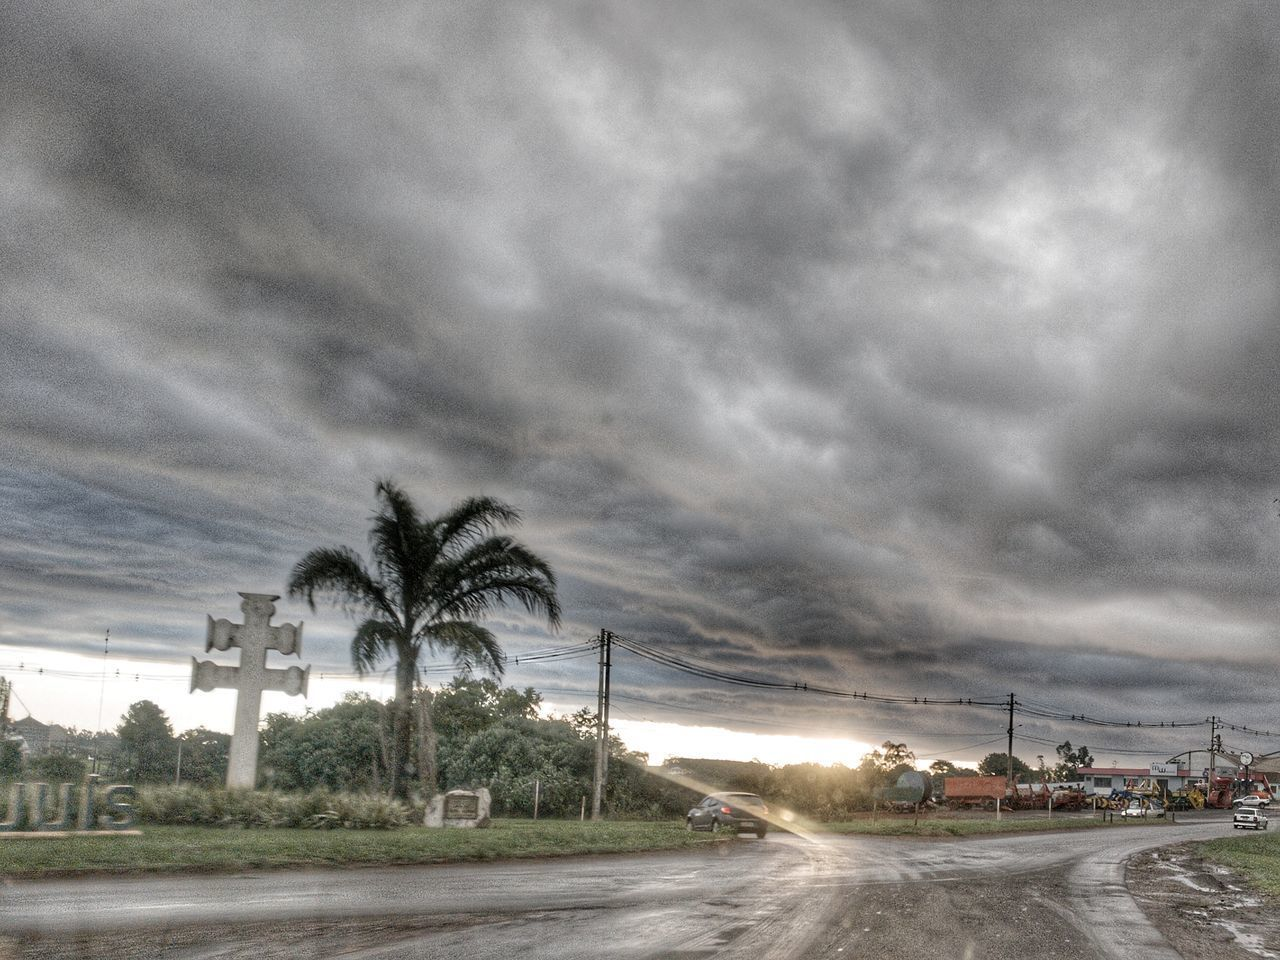 palm tree, cloud - sky, sky, tree, storm cloud, road, weather, outdoors, street light, transportation, nature, built structure, no people, architecture, building exterior, illuminated, city, beauty in nature, day, water, thunderstorm